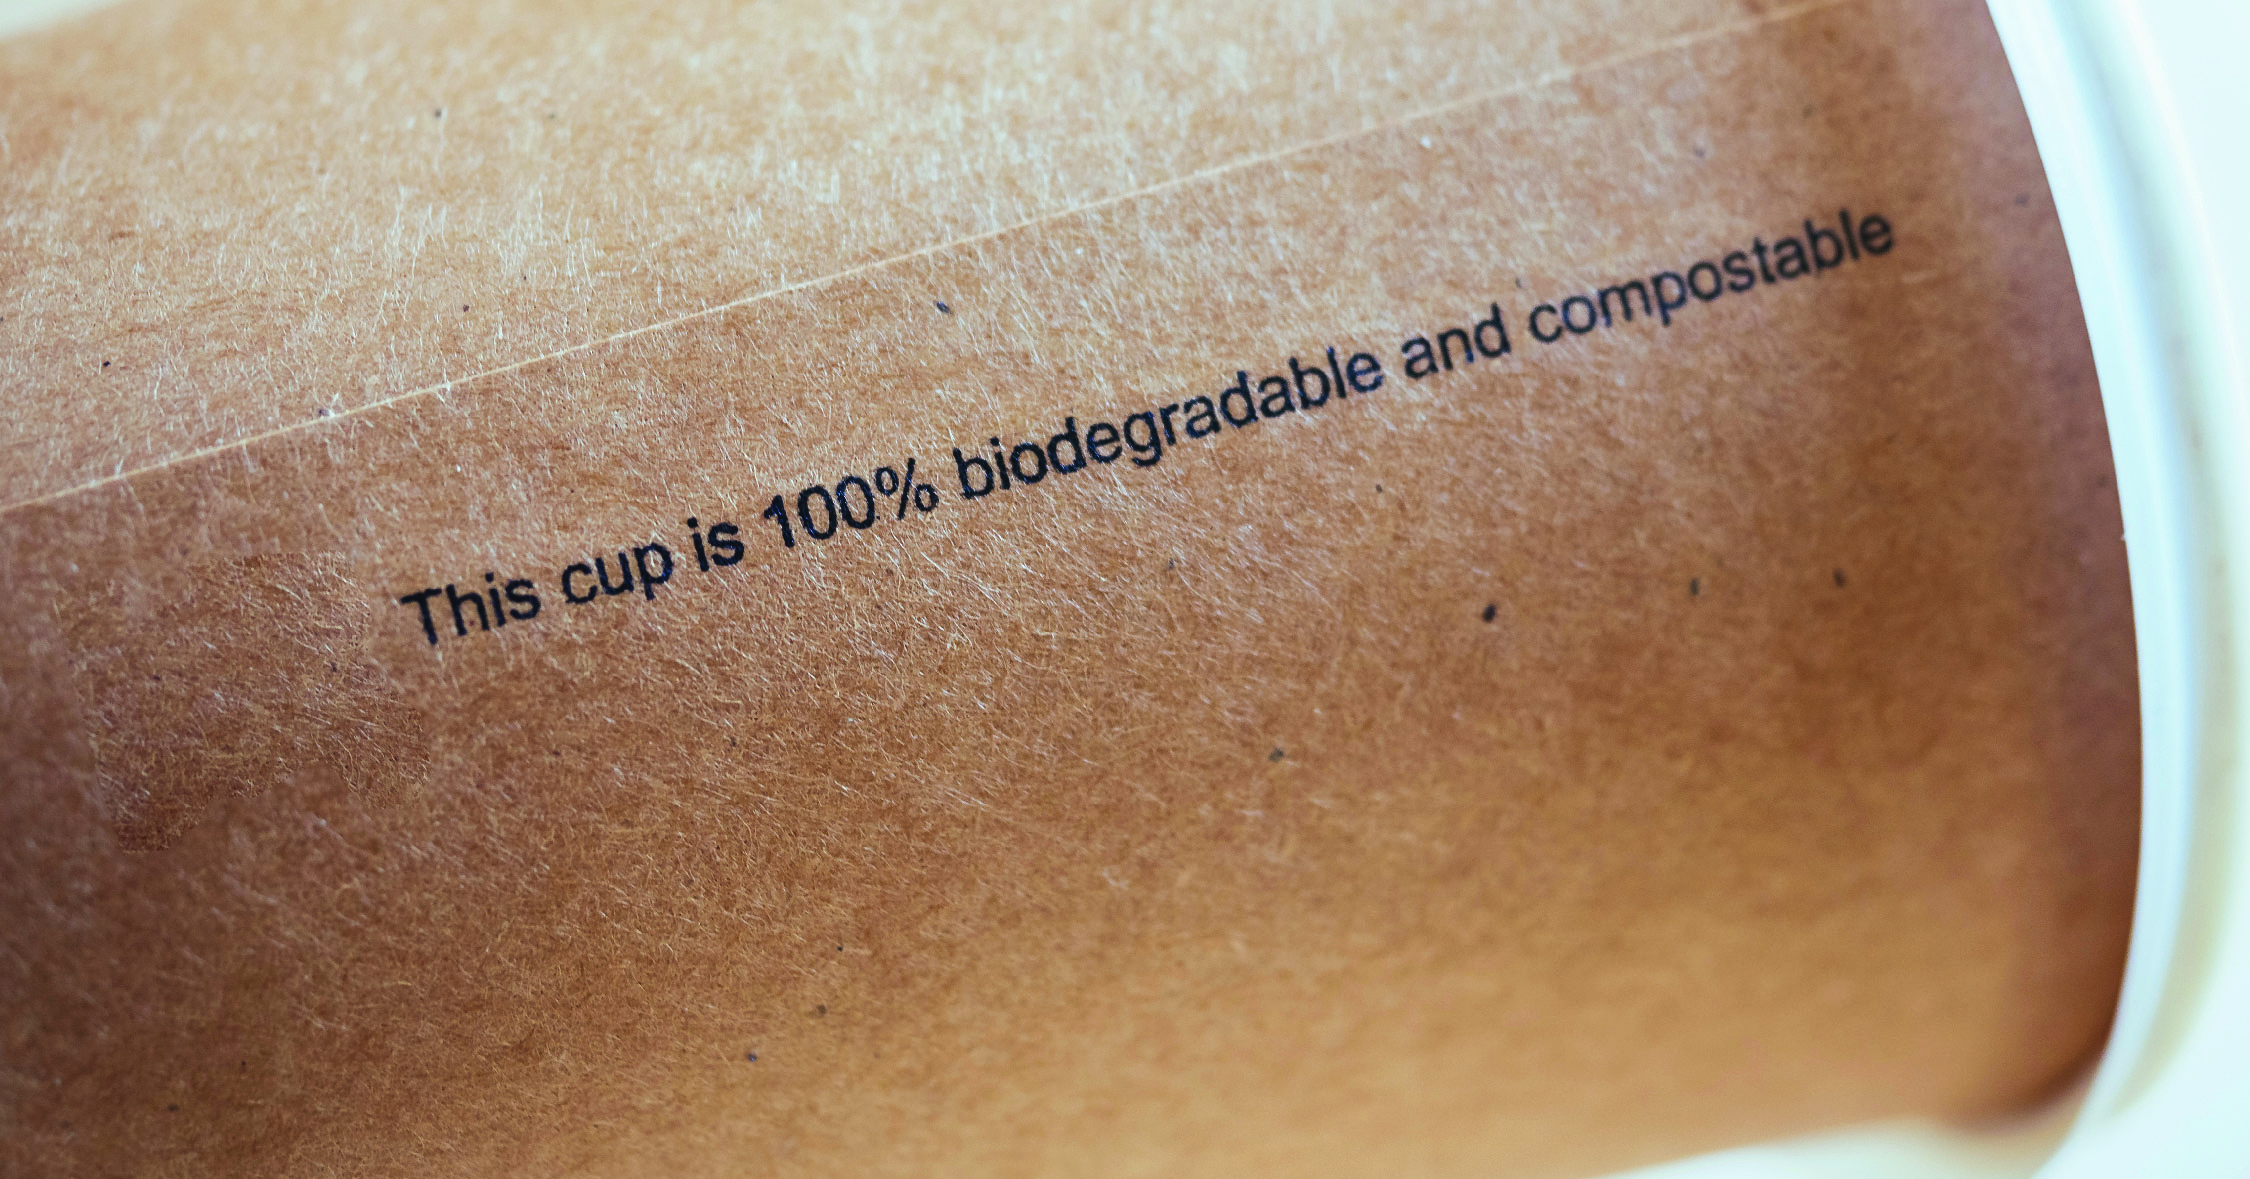 Mythbusting Common Compostability Claims